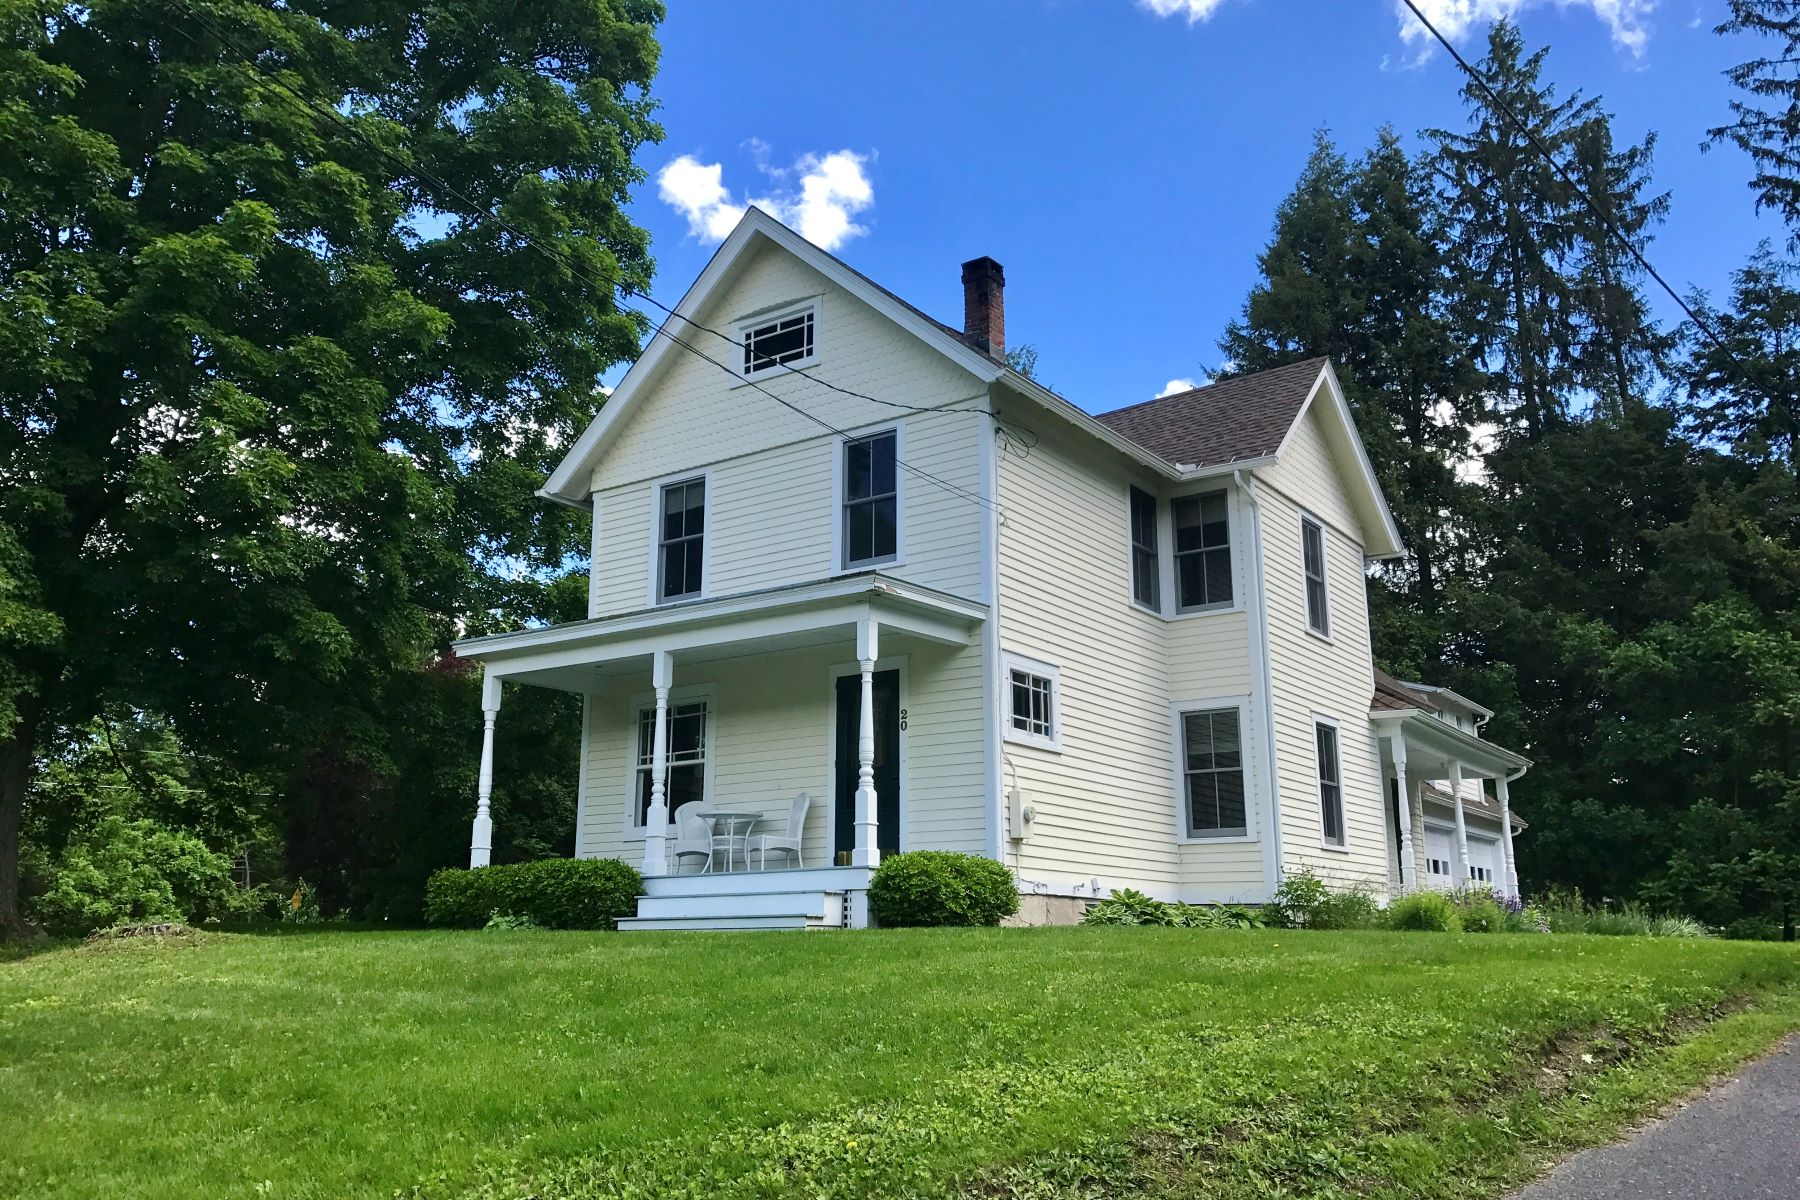 Single Family Home for Sale at Walk to Lakeville Lake 20 Ethan Allen St Salisbury, Connecticut, 06039 United States